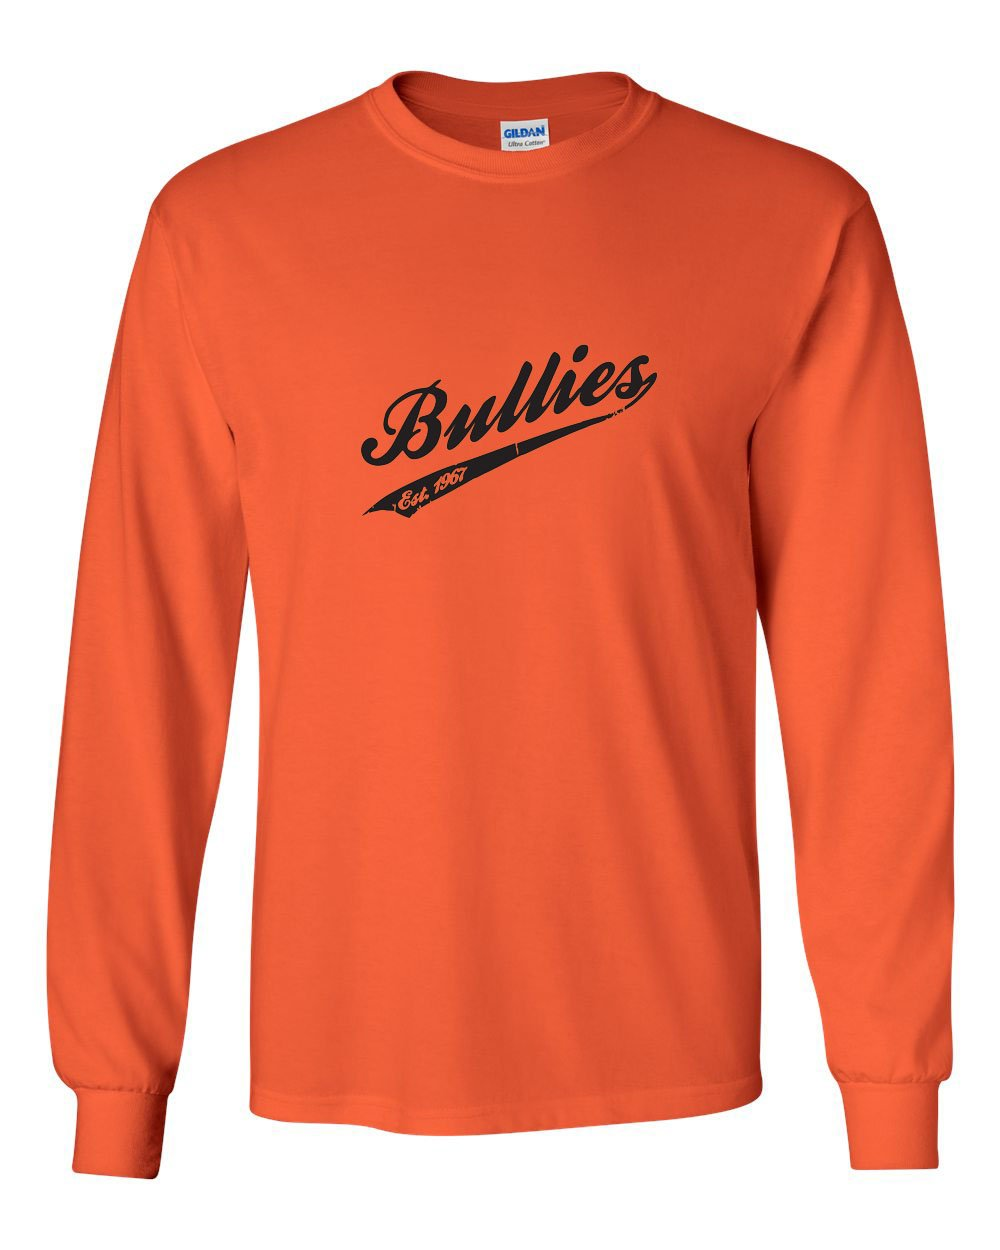 Vintage Bullies MENS Long Sleeve Heavy Cotton T-Shirt